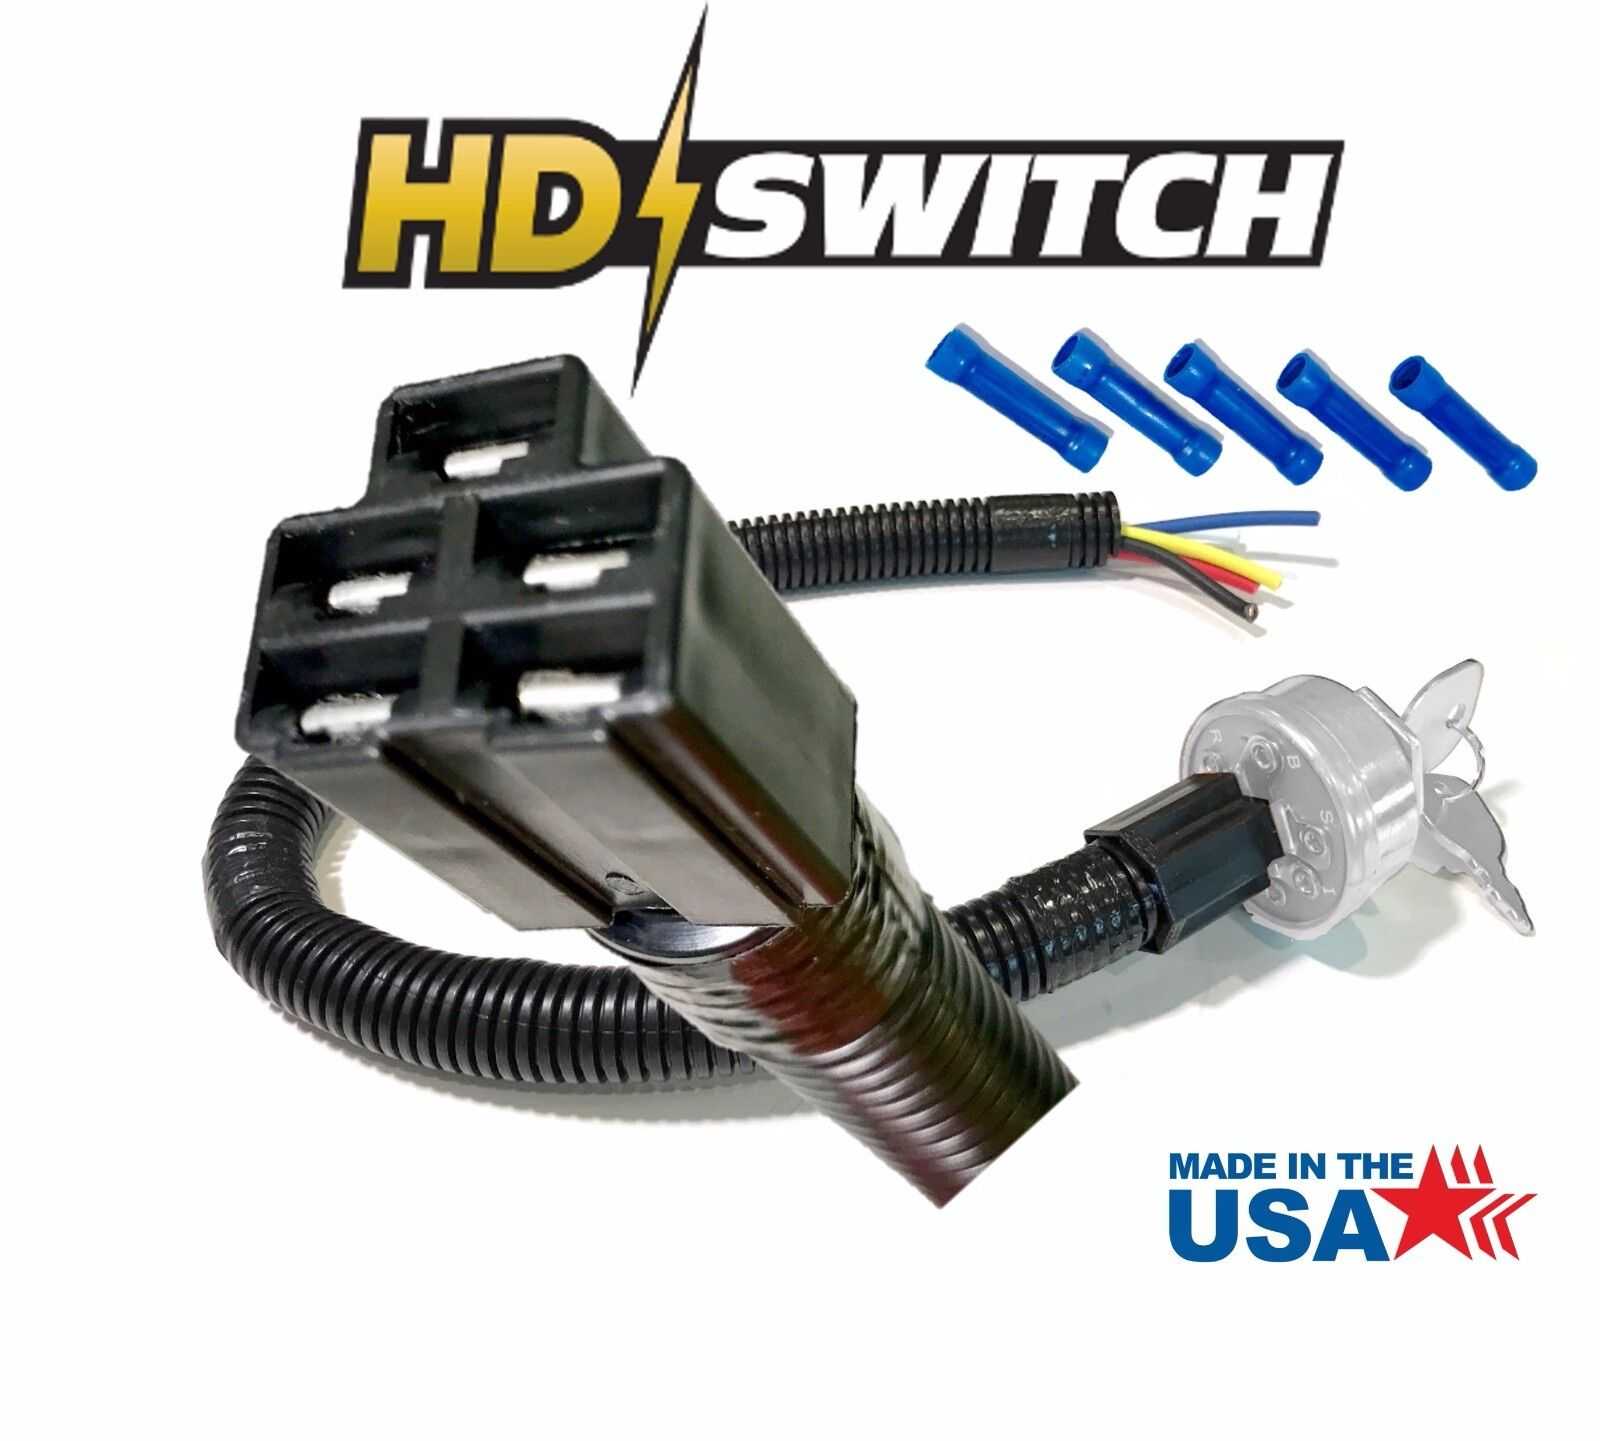 Husqvarna Wiring Harness Connectors Diagram Fuse Box Toro Key Switch Wire Connector Plug Asy For 506558701 Rh Ebay Com